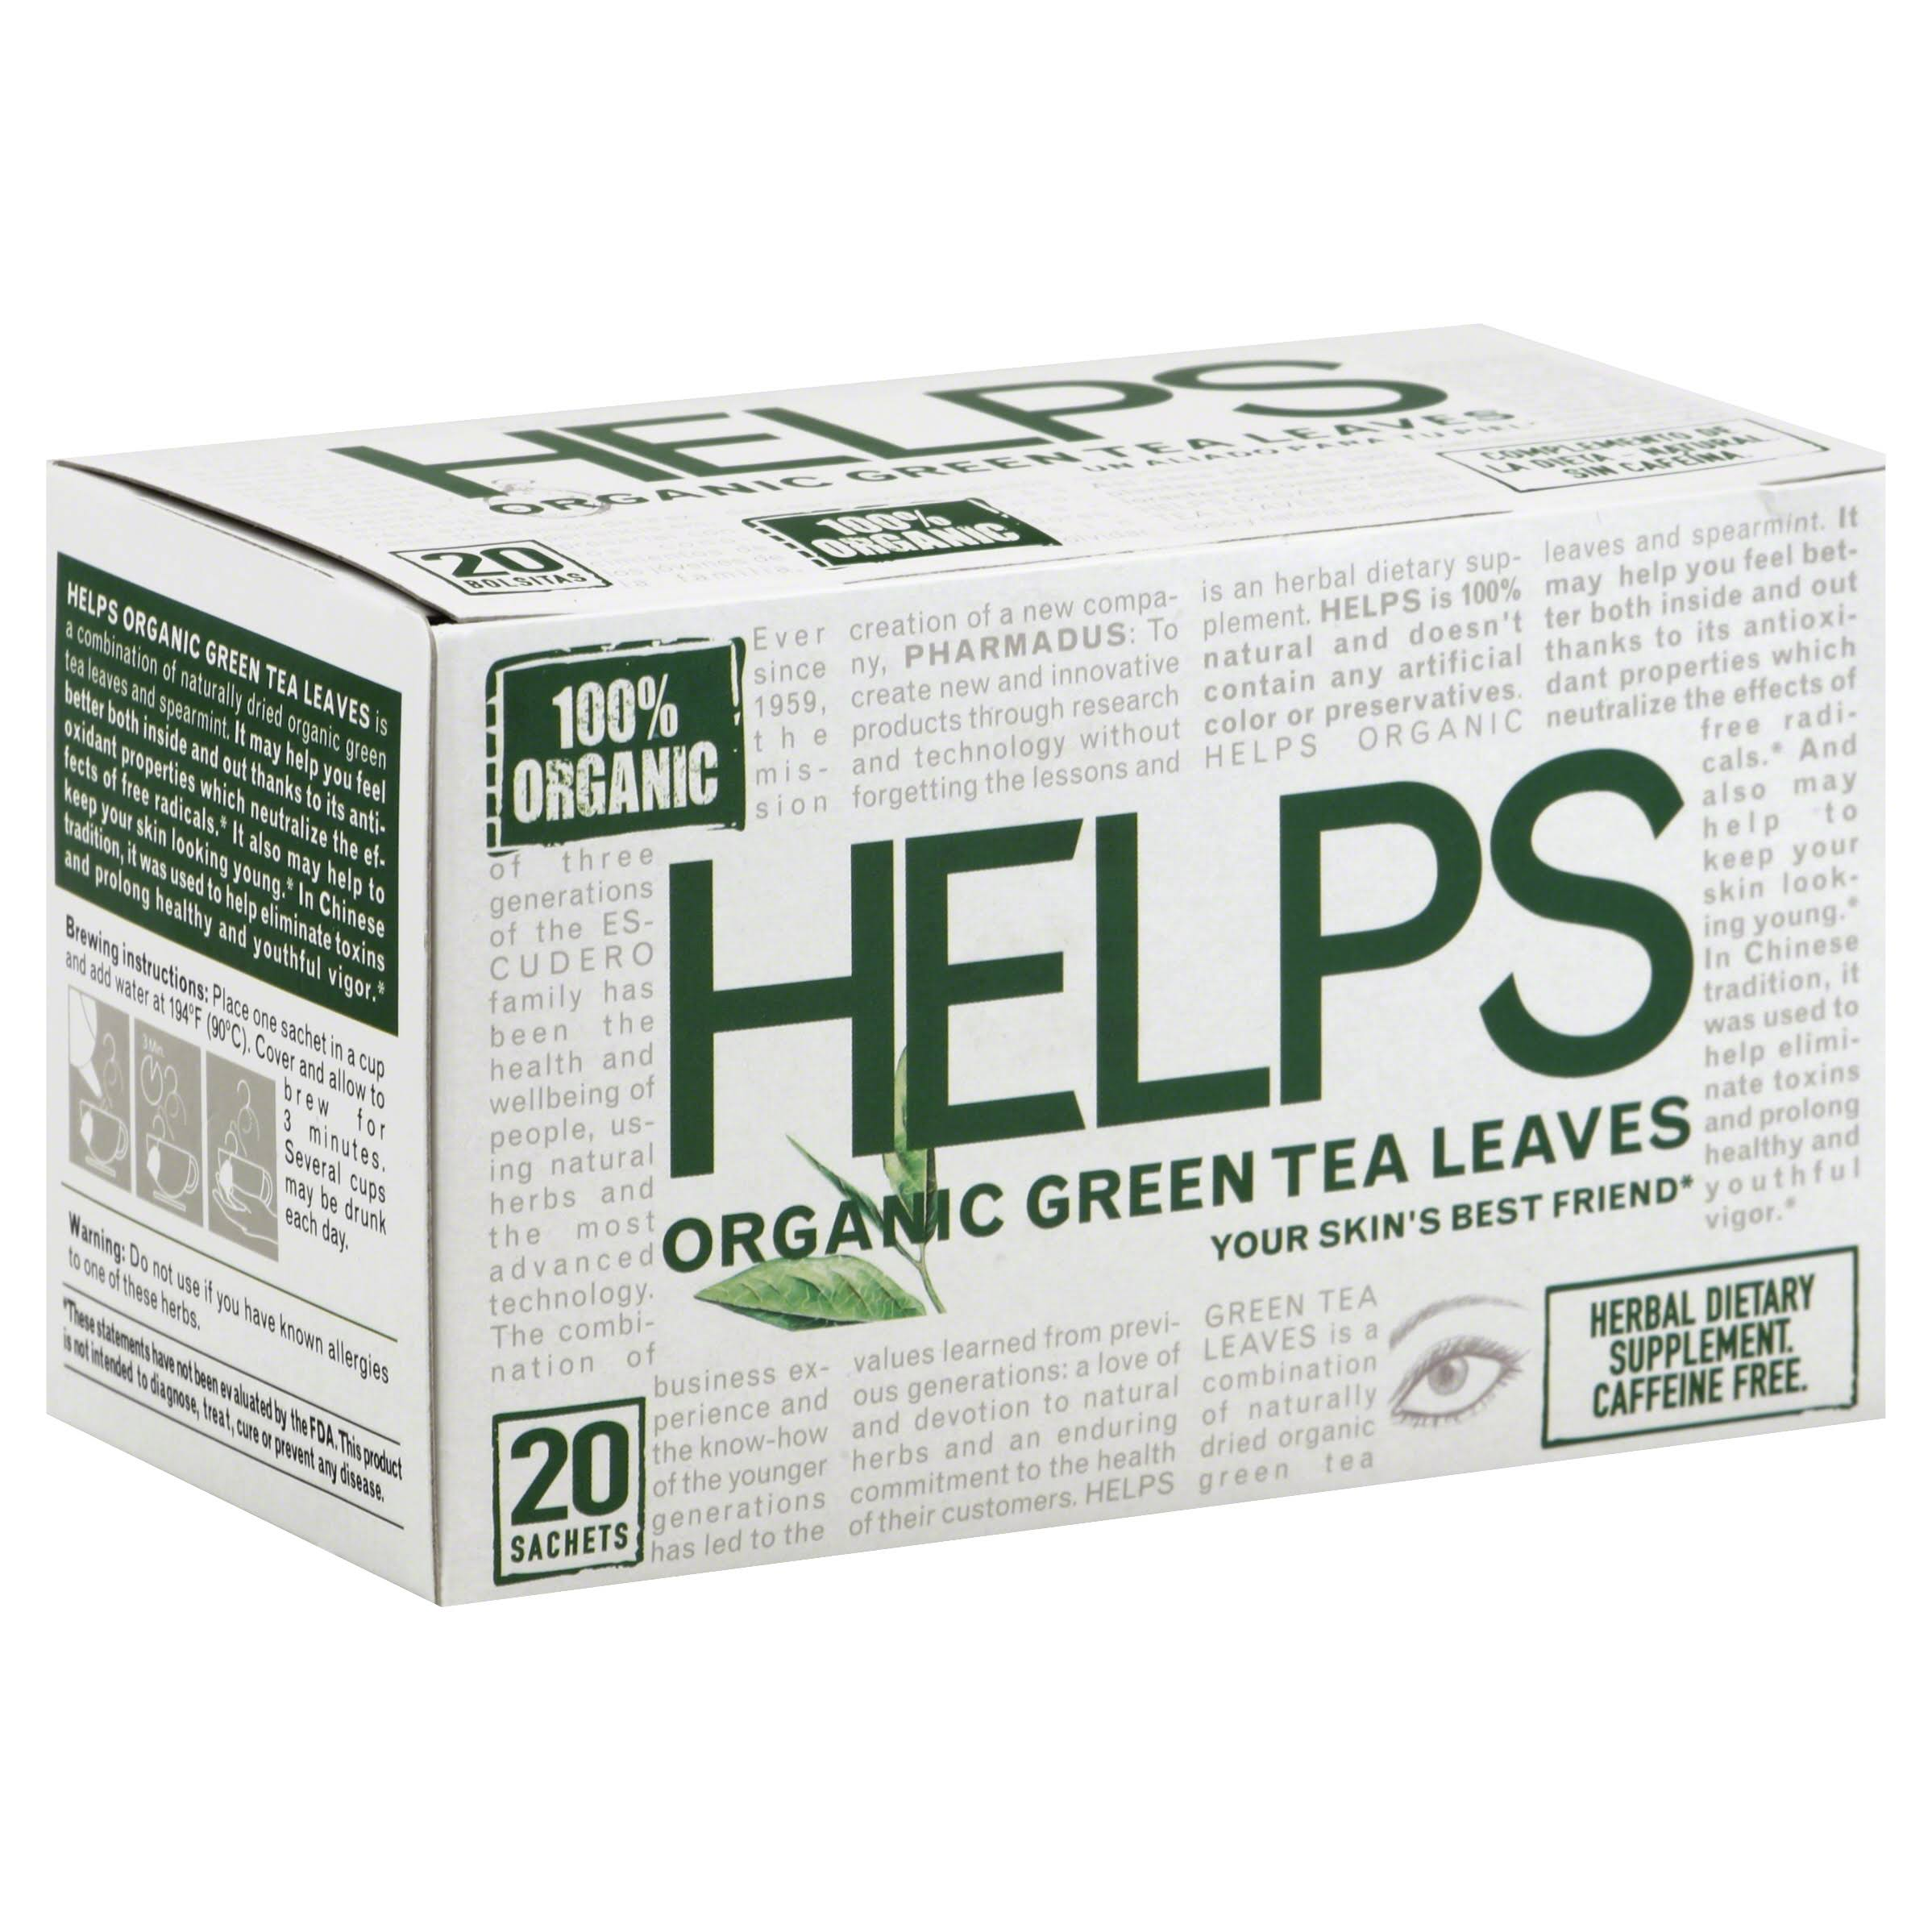 Helps Live Functional Teas - 0.85oz, x16